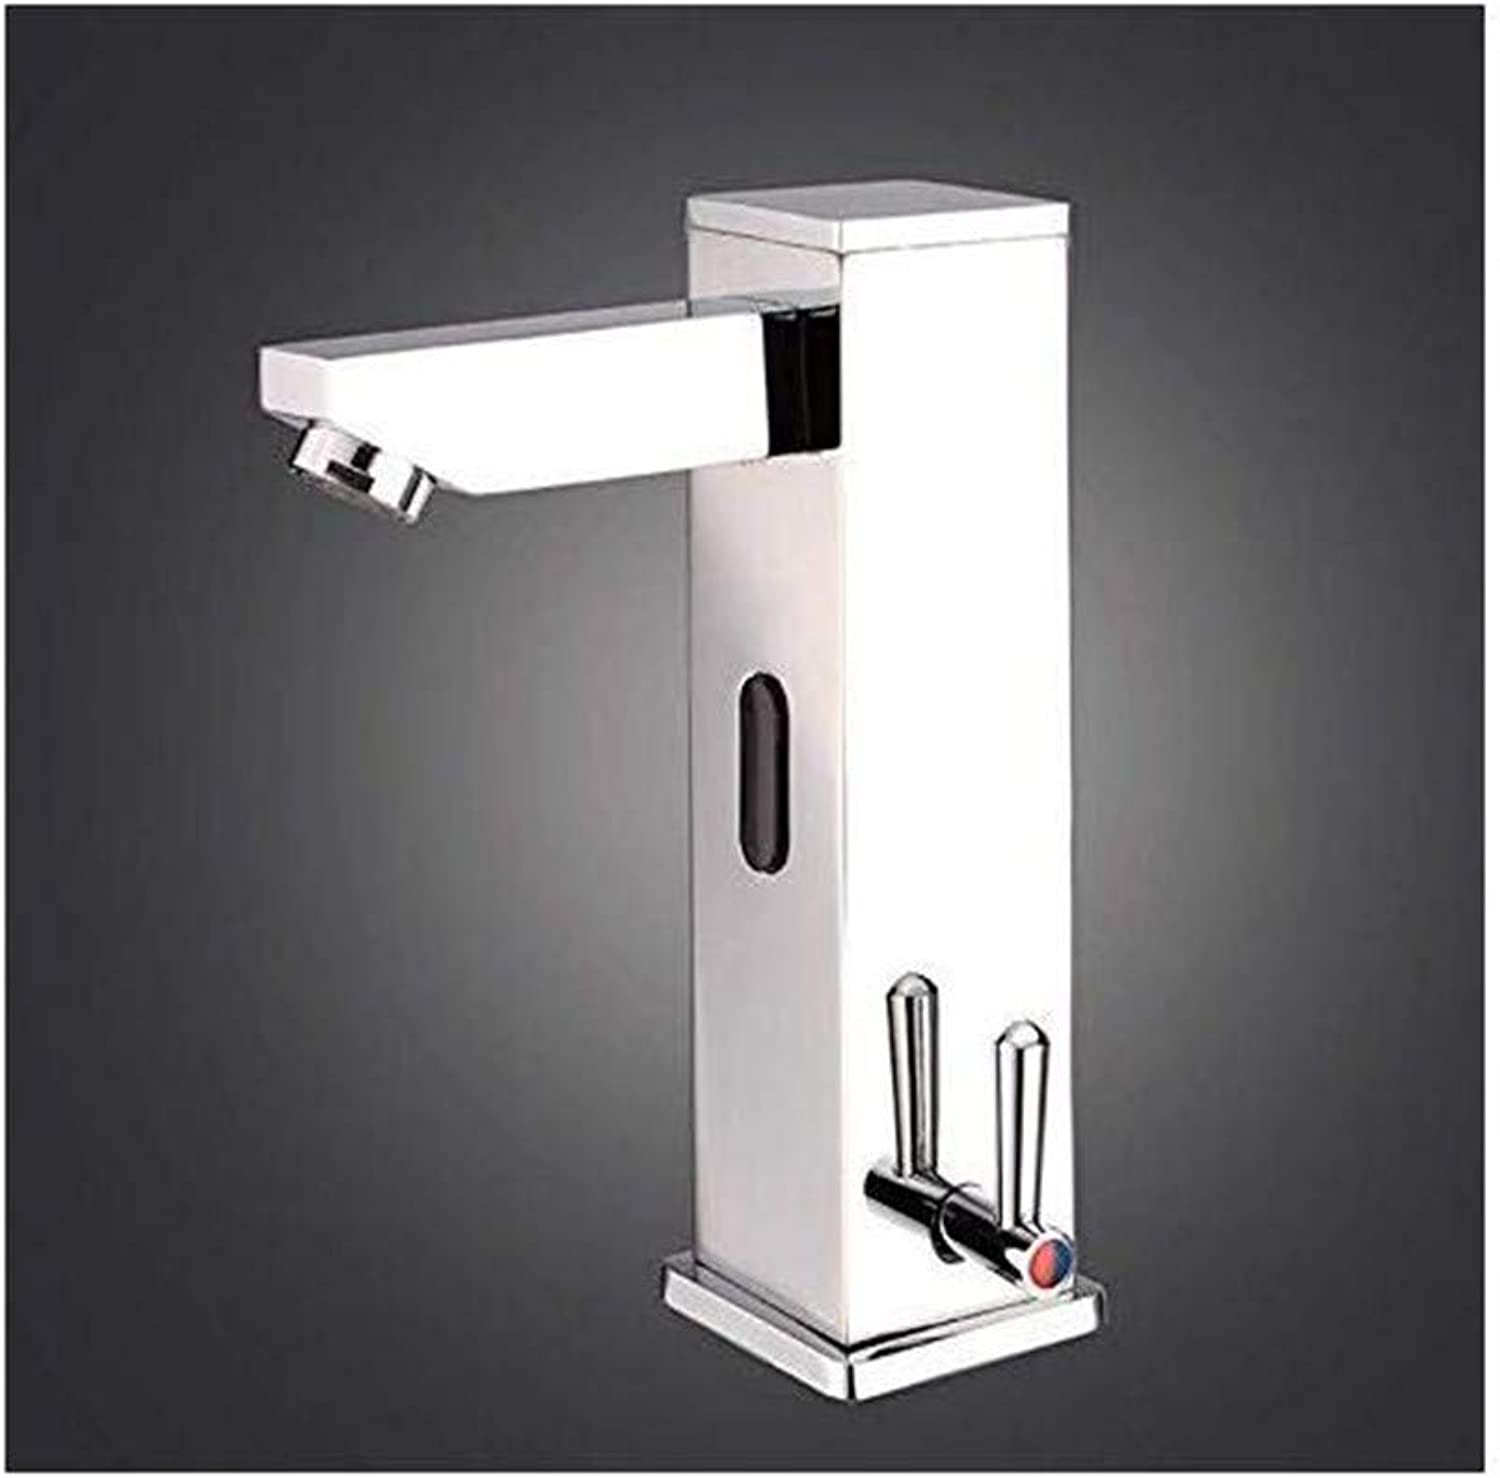 Faucet Luxury Plated Mixer Faucet Taps All-Copper Integrated Hot and Cold Sensor Faucet Infrared Basin Mixing Faucet